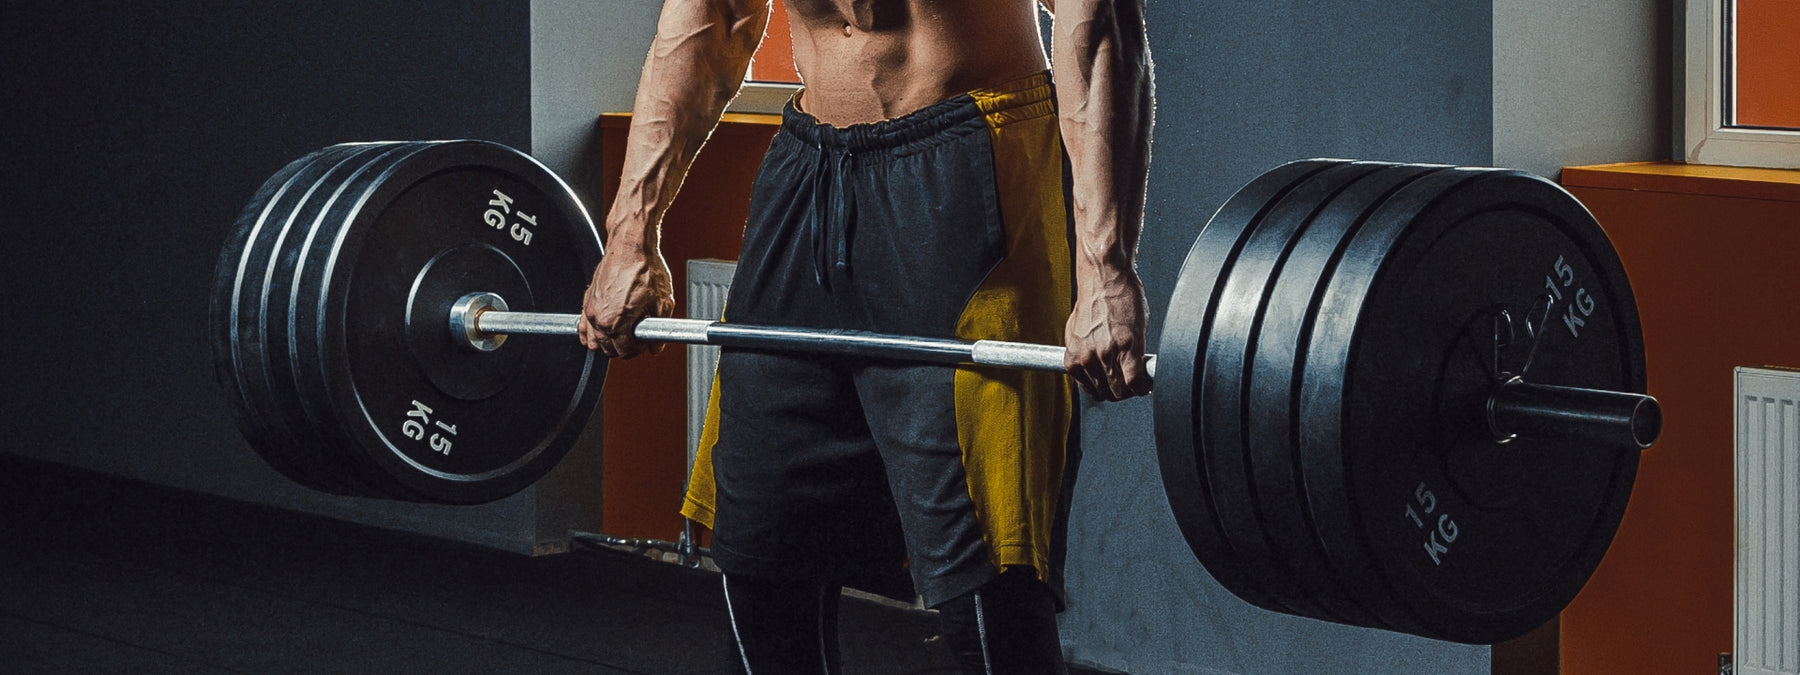 10 Deadlift Variations You Have to Try